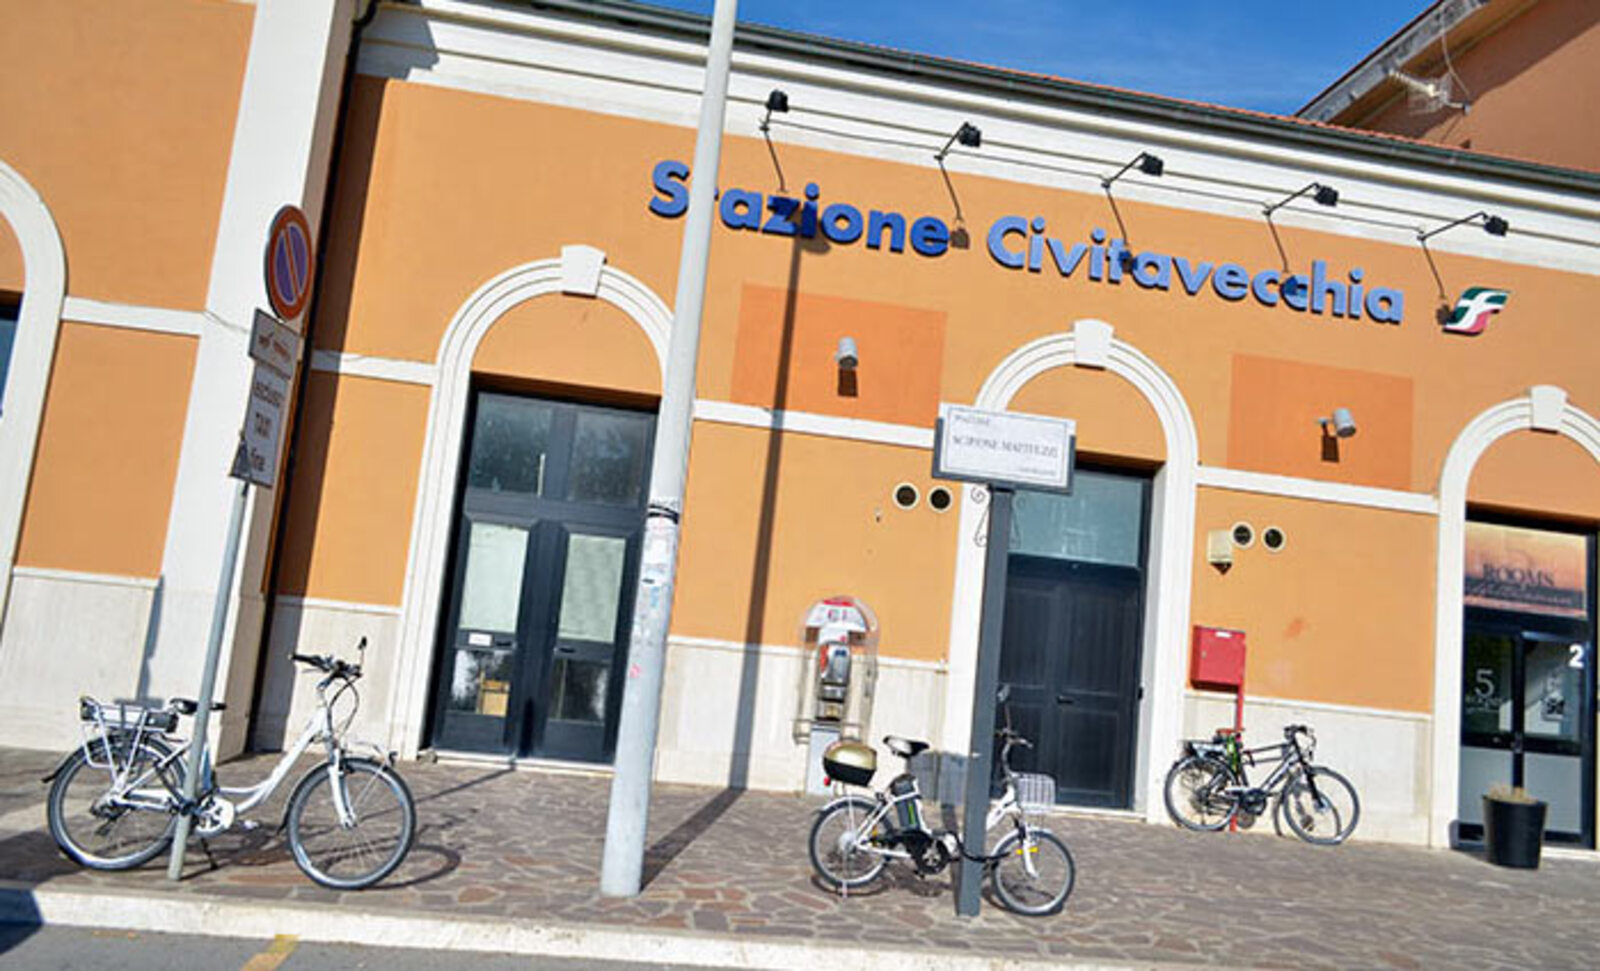 How To Get From Civitavecchia Port To Rome All The Possible - Civitavecchia train station to cruise ship